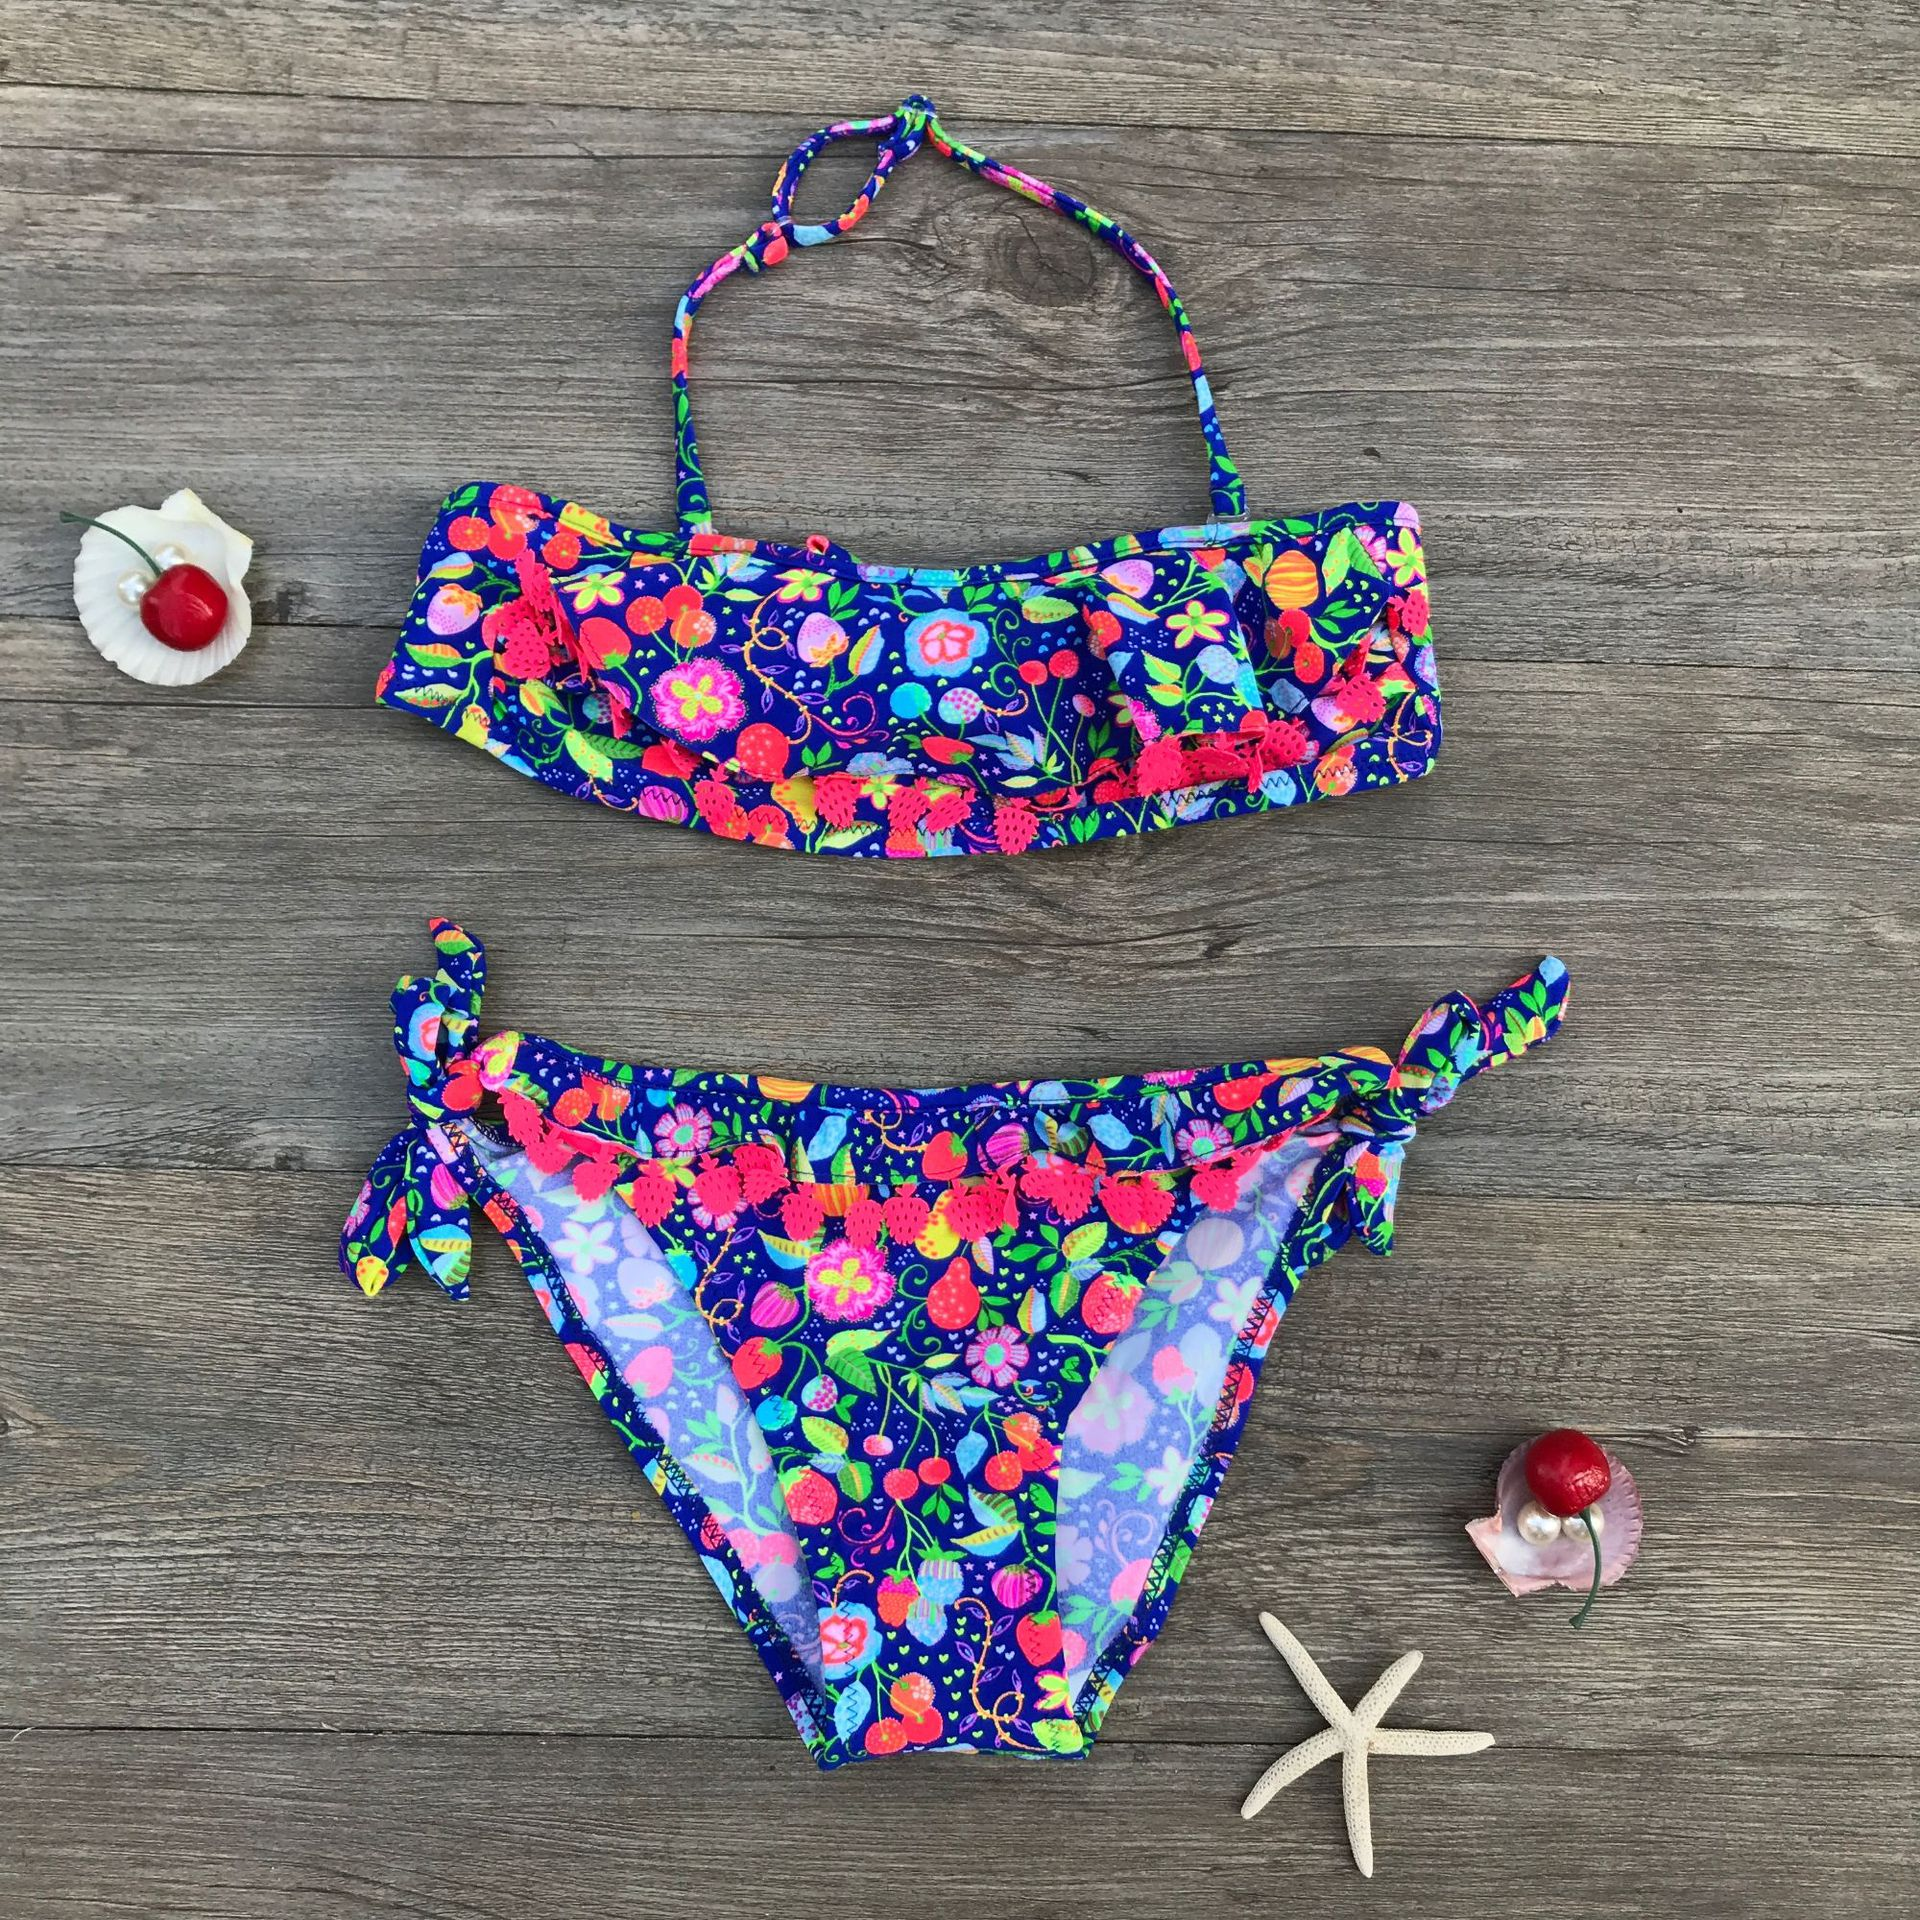 2019 Hot Selling Strawberry Hollow Out CHILDREN'S Bikini Girls Swimsuit 31